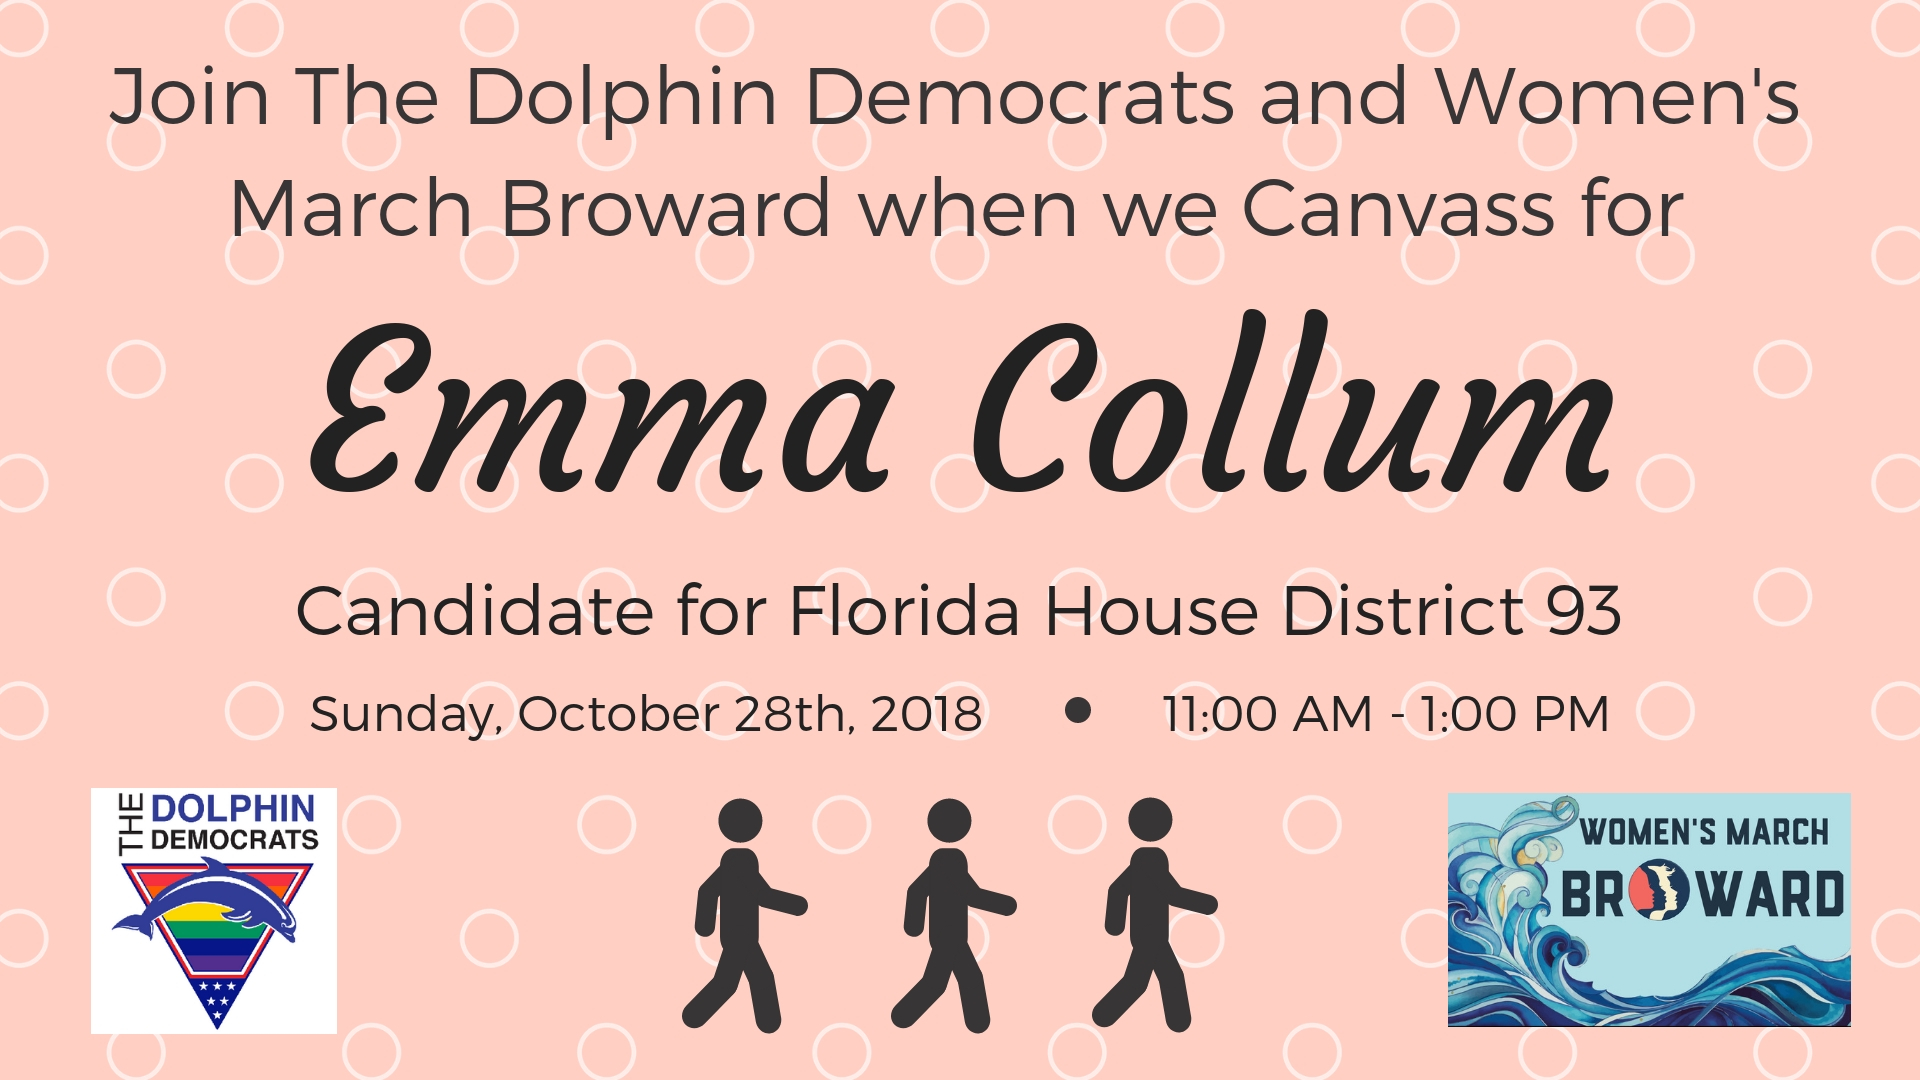 10-28-18: Canvassing for Emma Collum - Join The Dolphin Democrats and Women's March Broward as we Canvass for Florida House District 93 Candidate EMMA COLLUM. On October 28th, we will be knocking on doors and informing residents in District 93 about Emma's platform and encouraging them to Vote for her on November 6th!